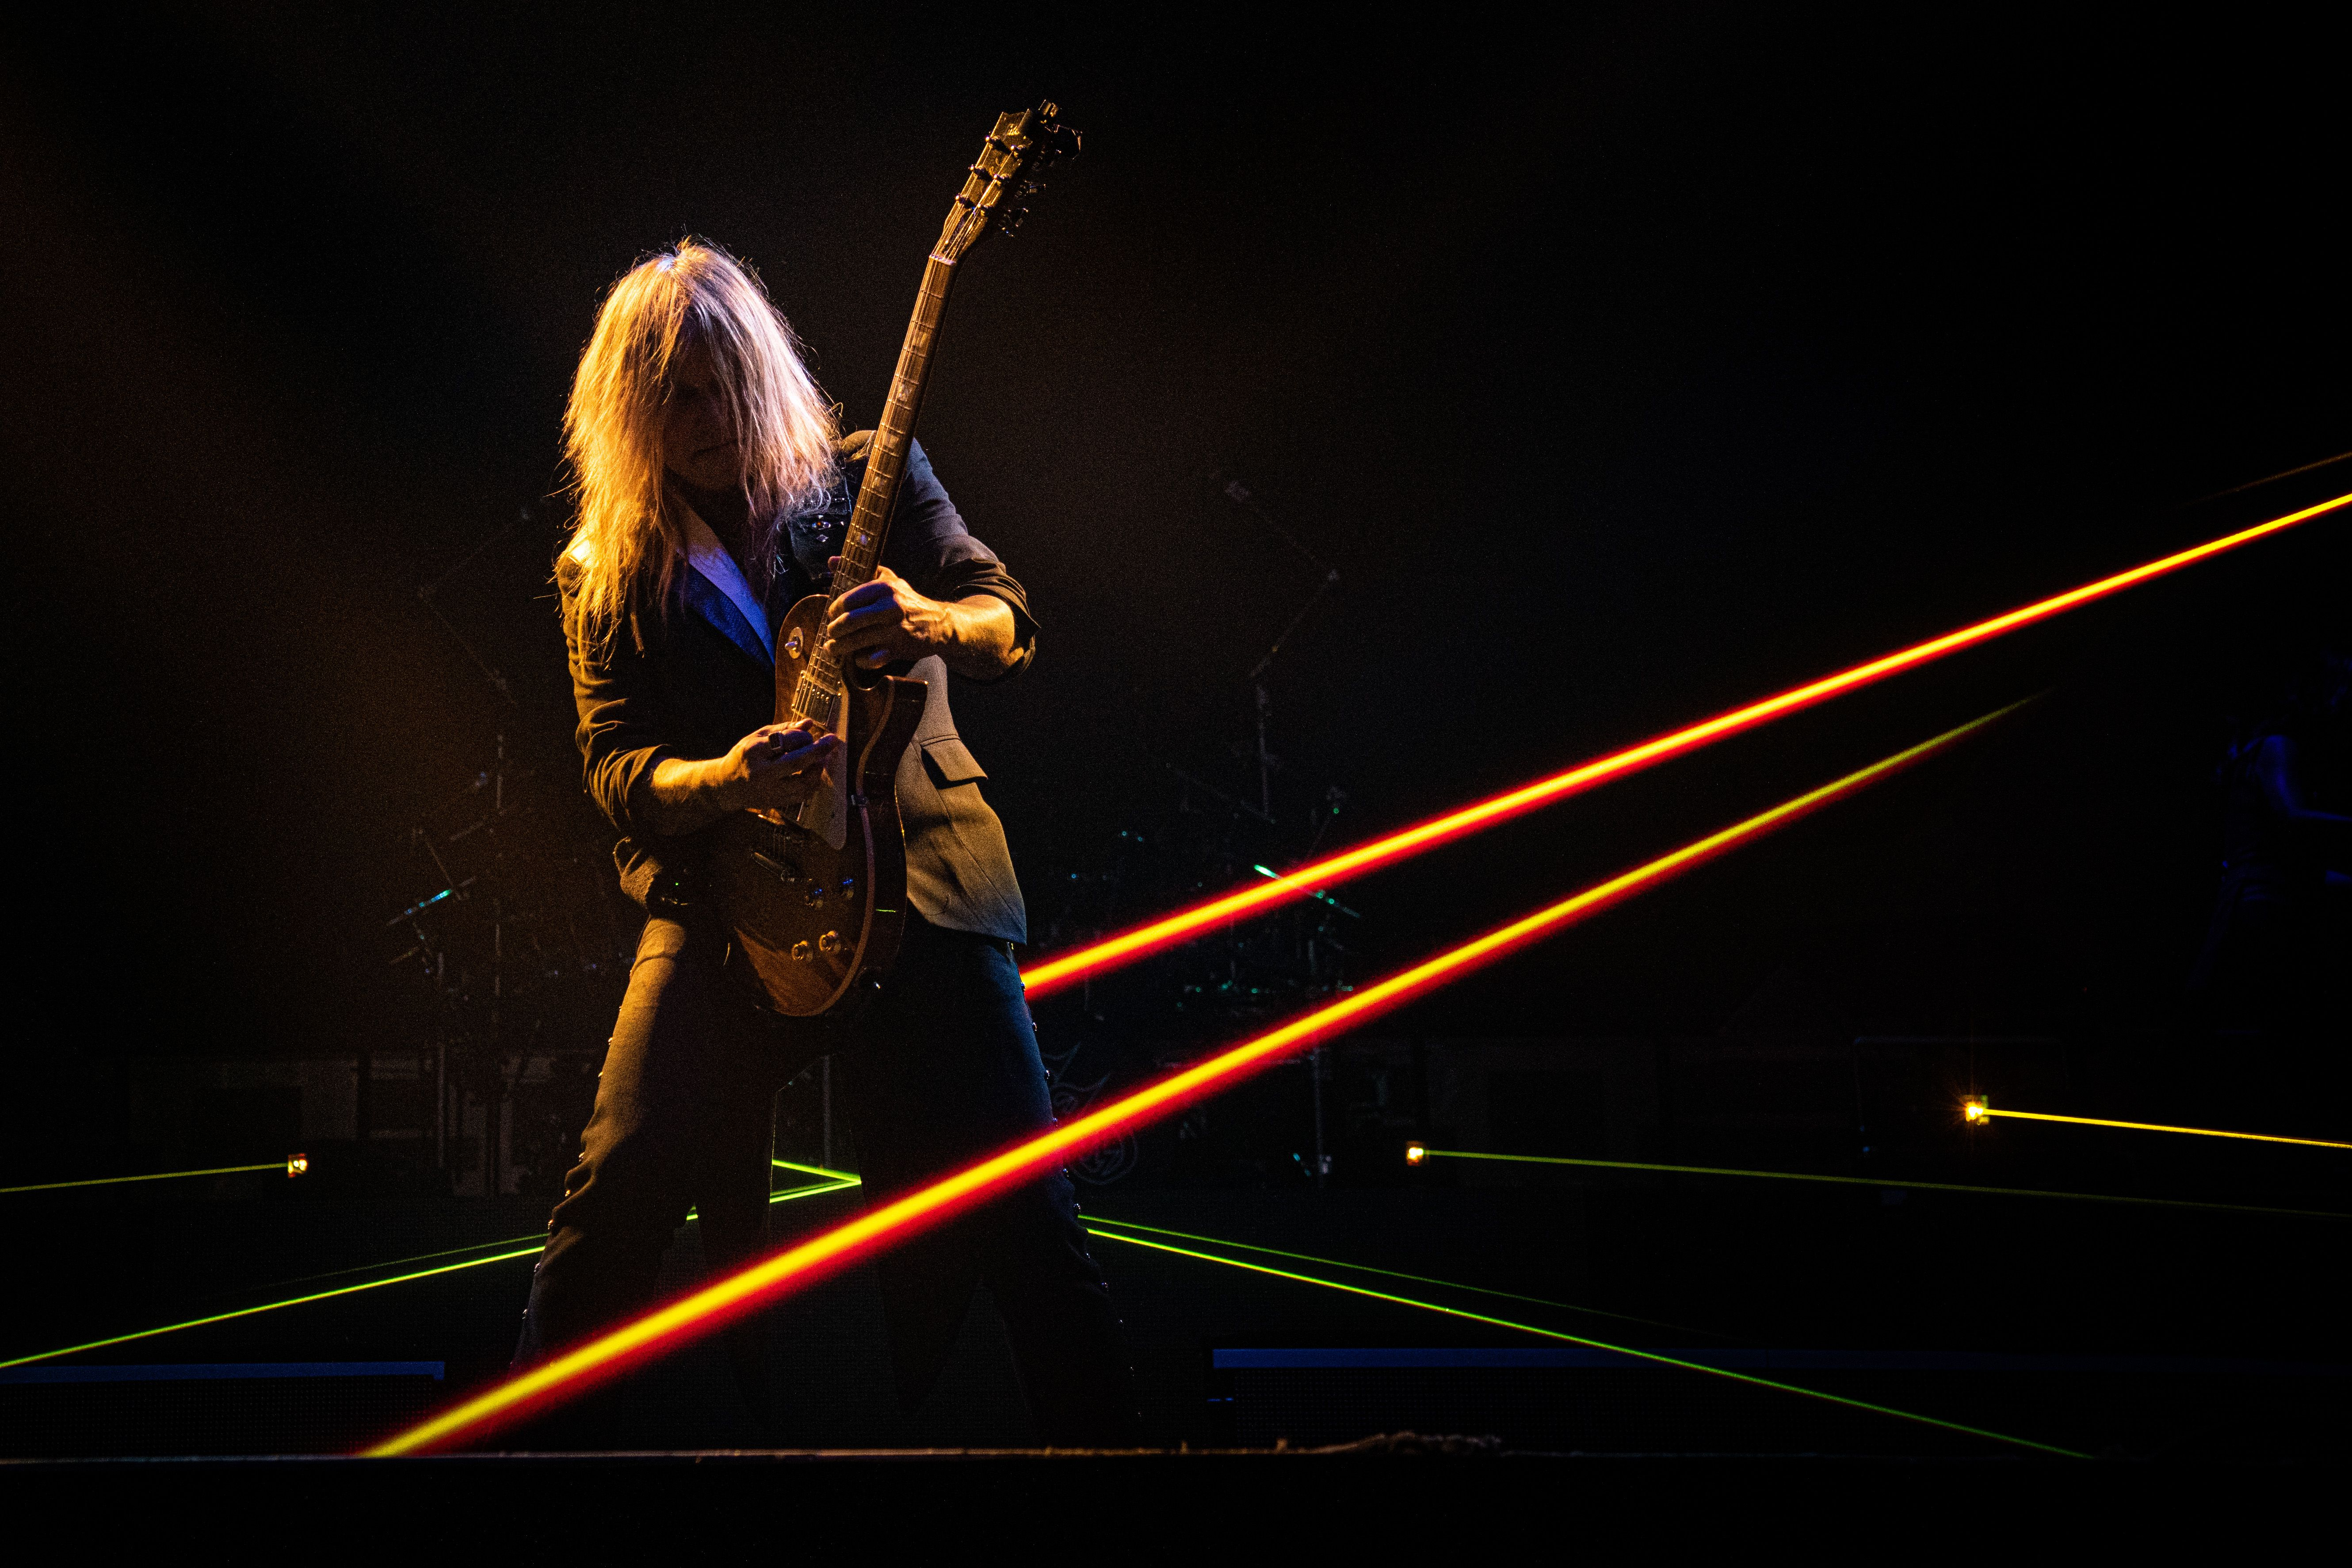 Trans Siberian Orchestra 2021 Christmas Special Trans Siberian Orchestra How To Stream Virtual Concert